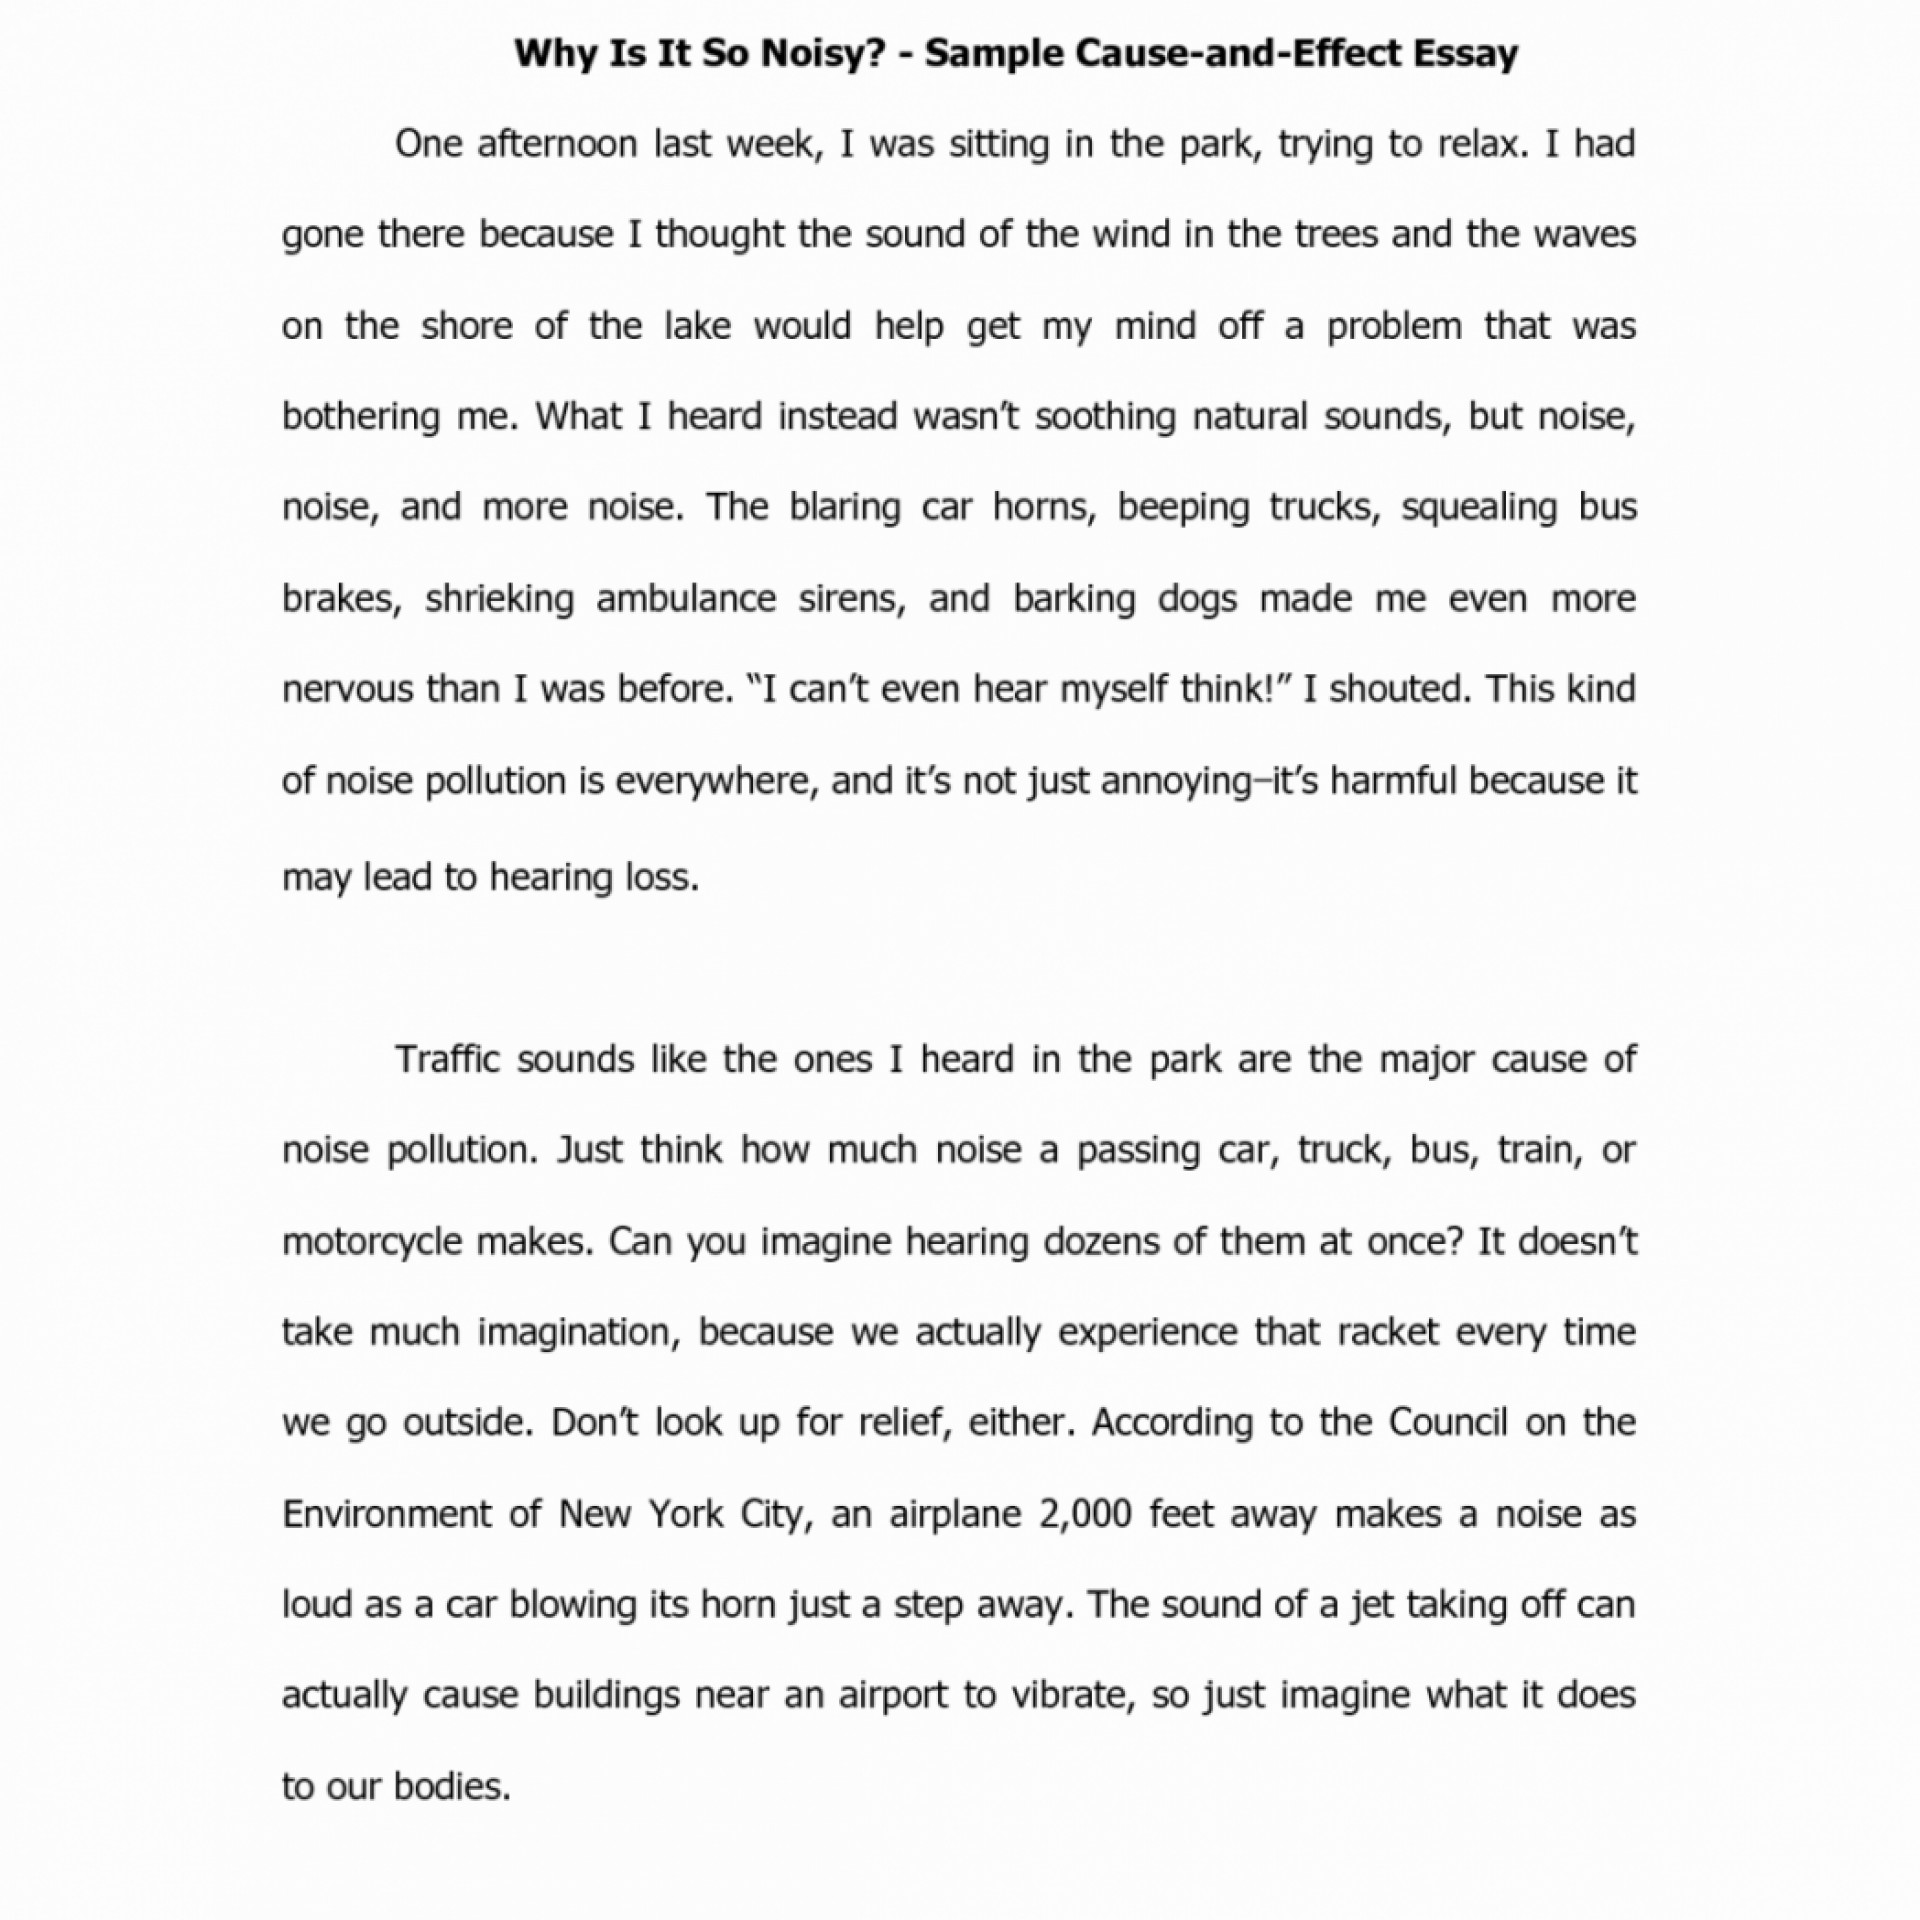 027 Cause And Effect Essays Format Best Of For Or Good Cover Bystander Domino Analysis Ielts Free 6th Grade College Pdf Middle School 1048x1048 Amazing Essay Examples Divorce On Stress 4th 1920